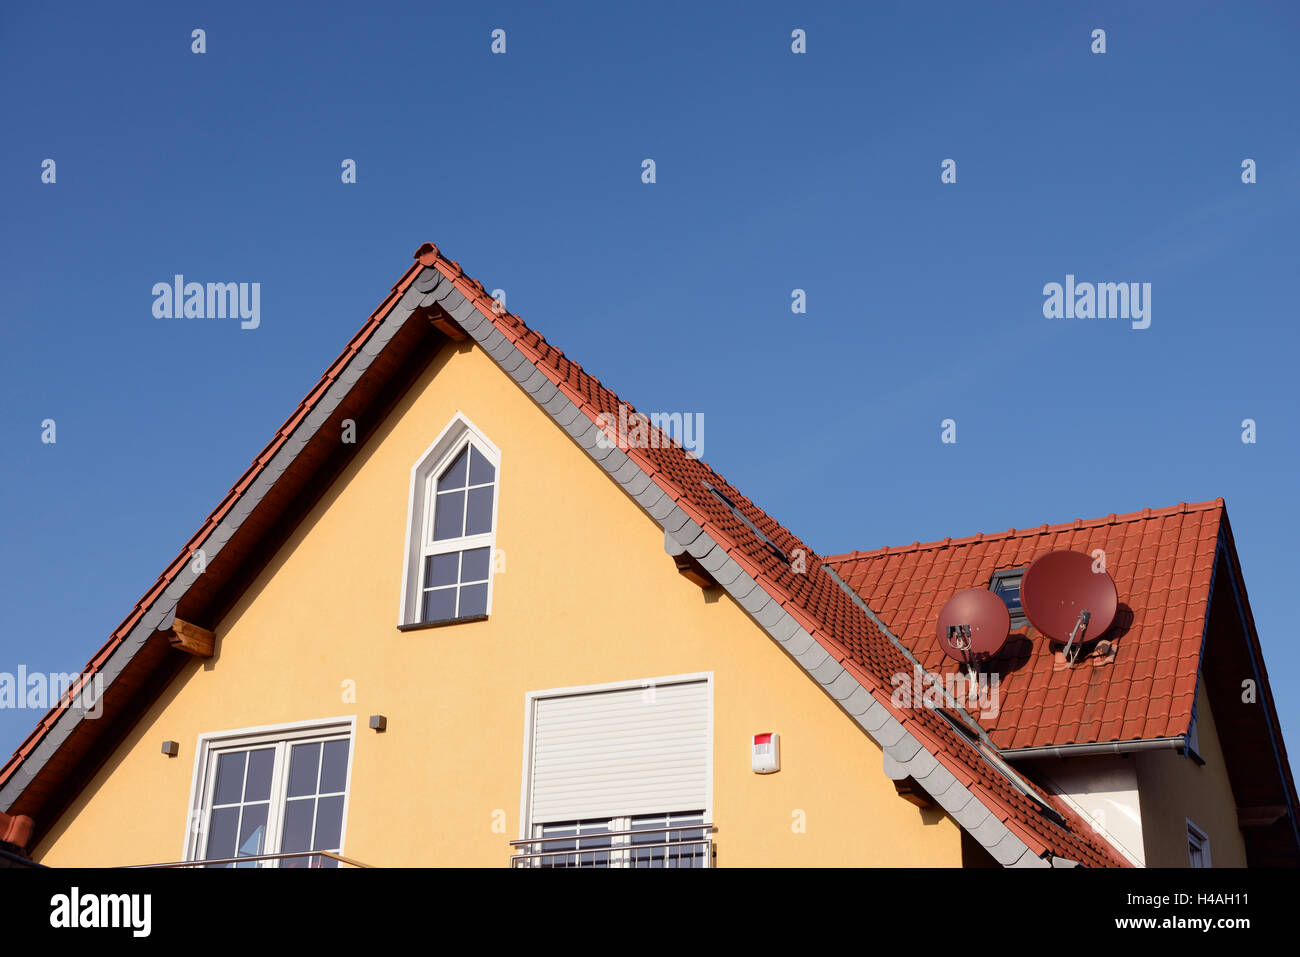 Gable of a common single-family house, Germany, North Rhine-Westphalia, Dormagen - Stock Image